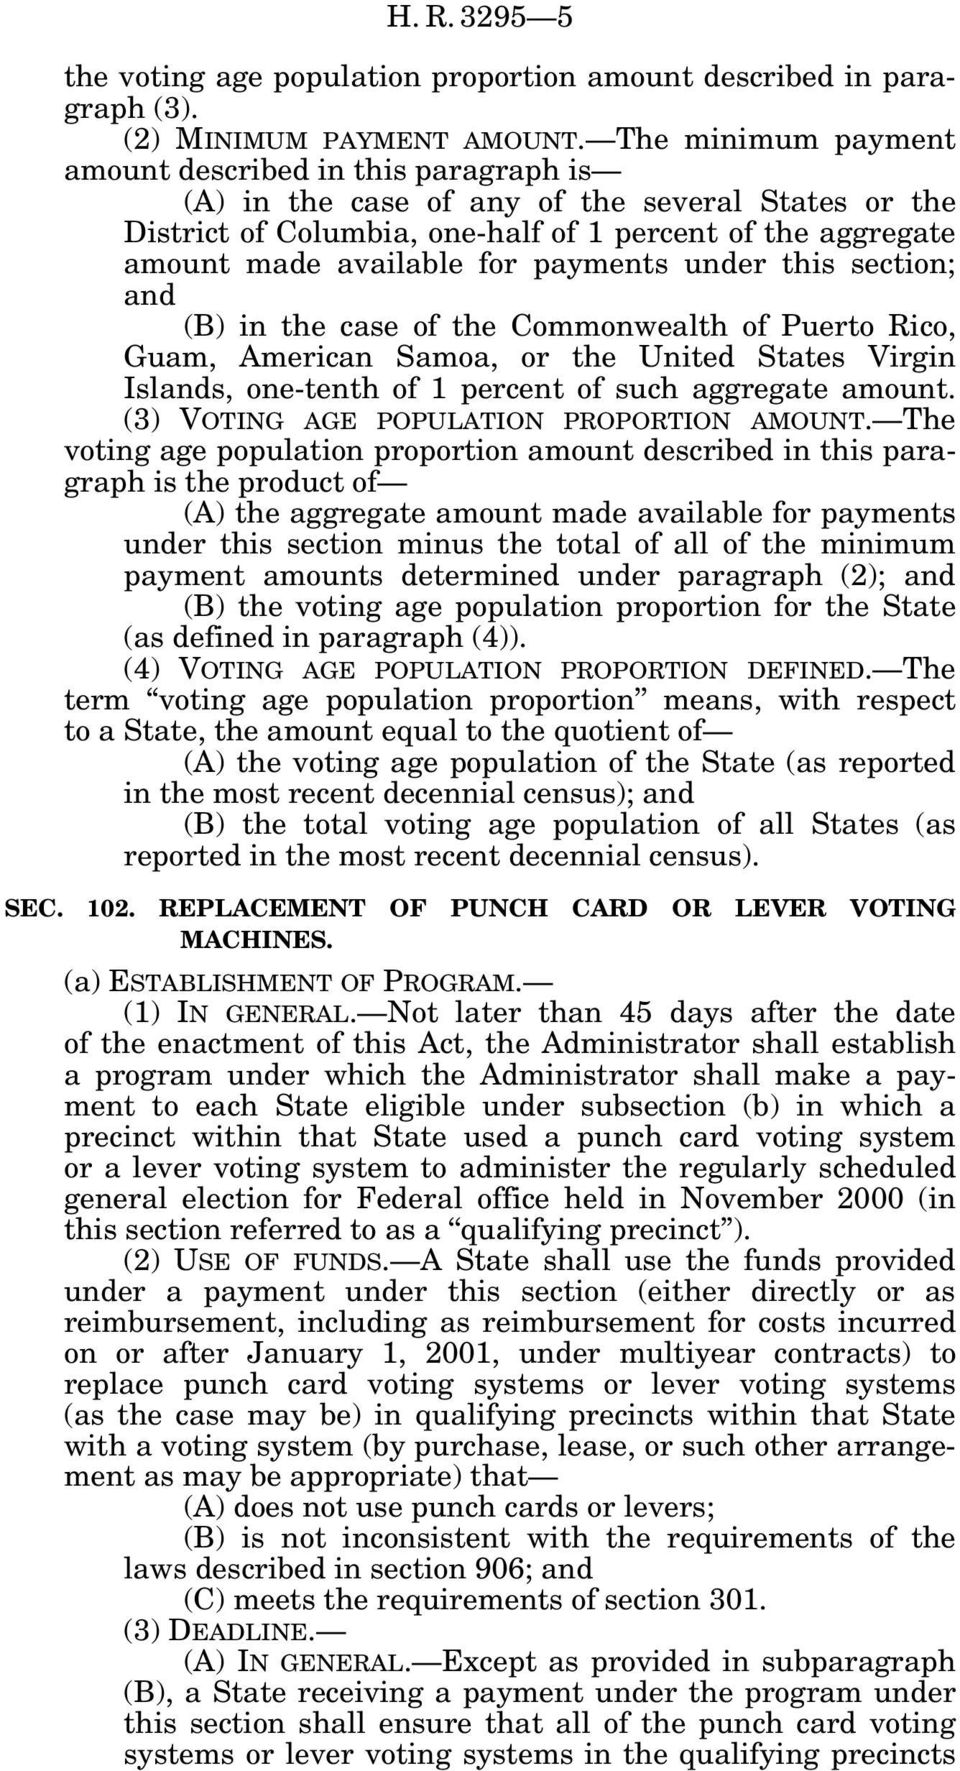 payments under this section; and (B) in the case of the Commonwealth of Puerto Rico, Guam, American Samoa, or the United States Virgin Islands, one-tenth of 1 percent of such aggregate amount.